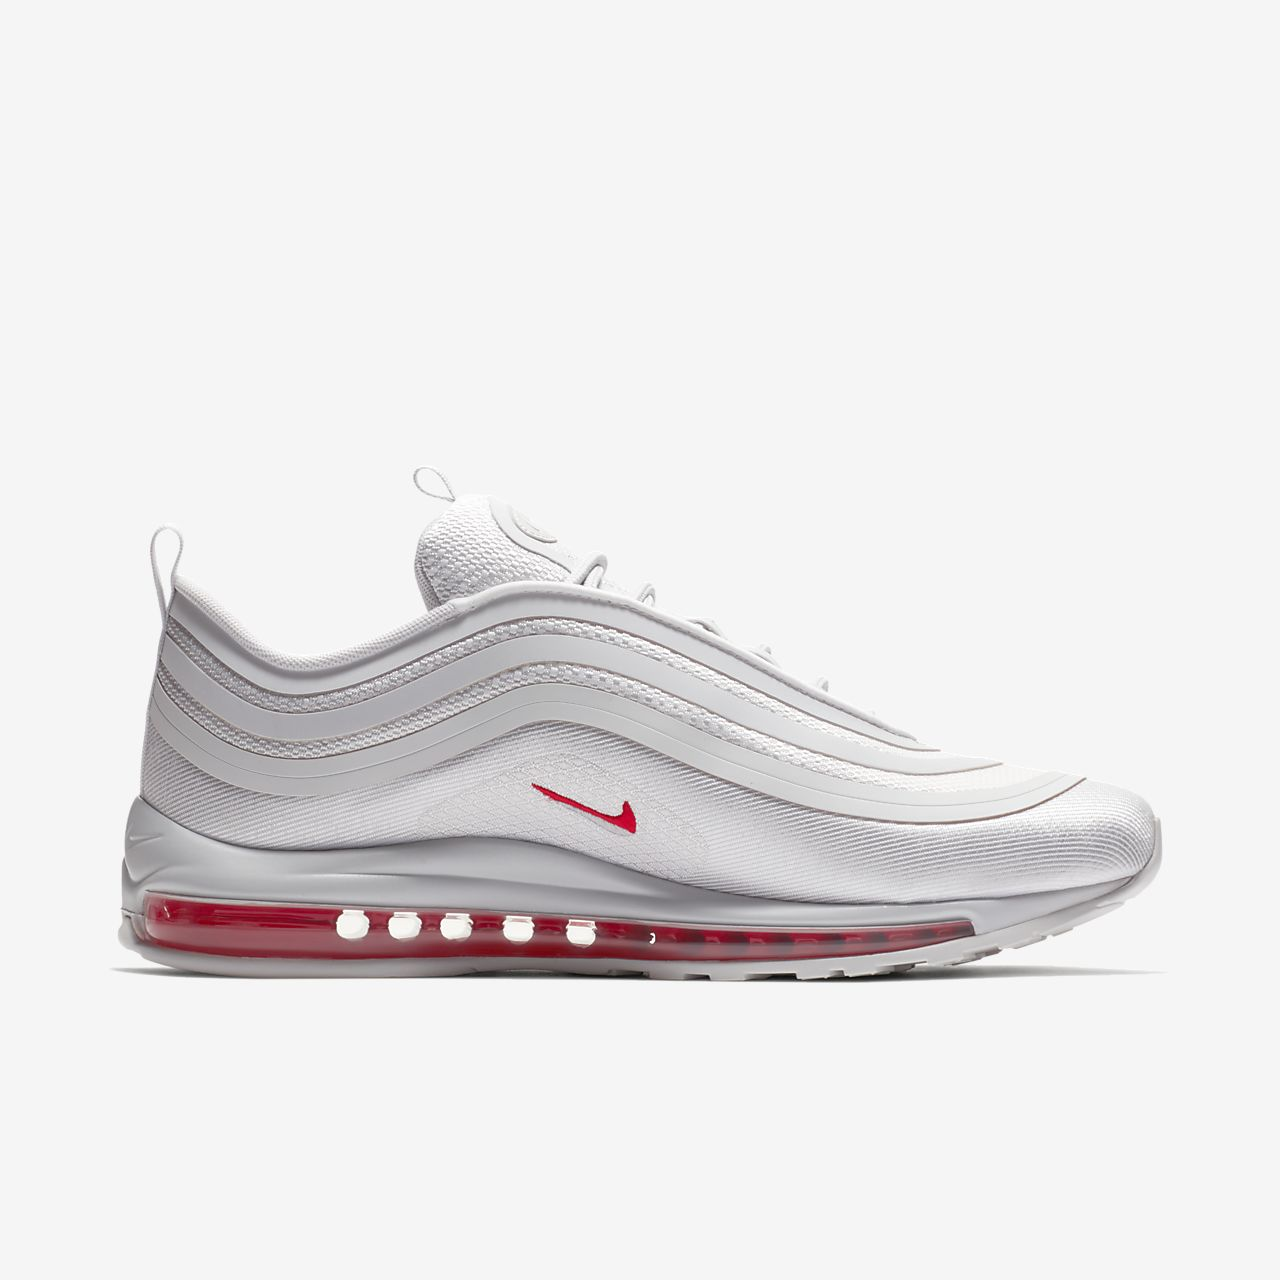 Nike Air Max 97 Premium Nike 312834 200 particle beige/summit